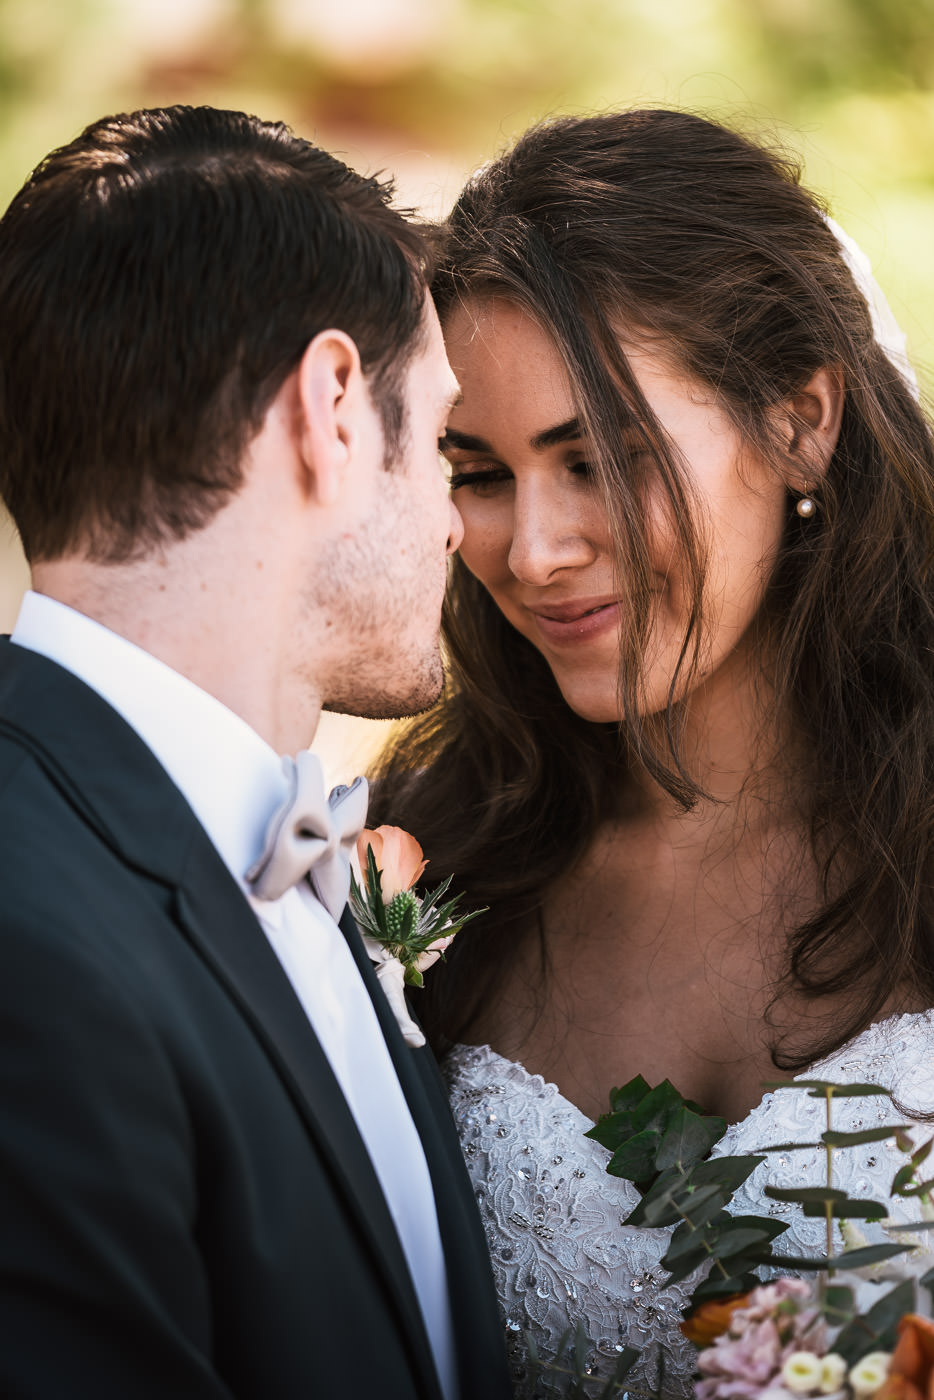 Couple gets close for an intimate photoshoot after their ceremony.